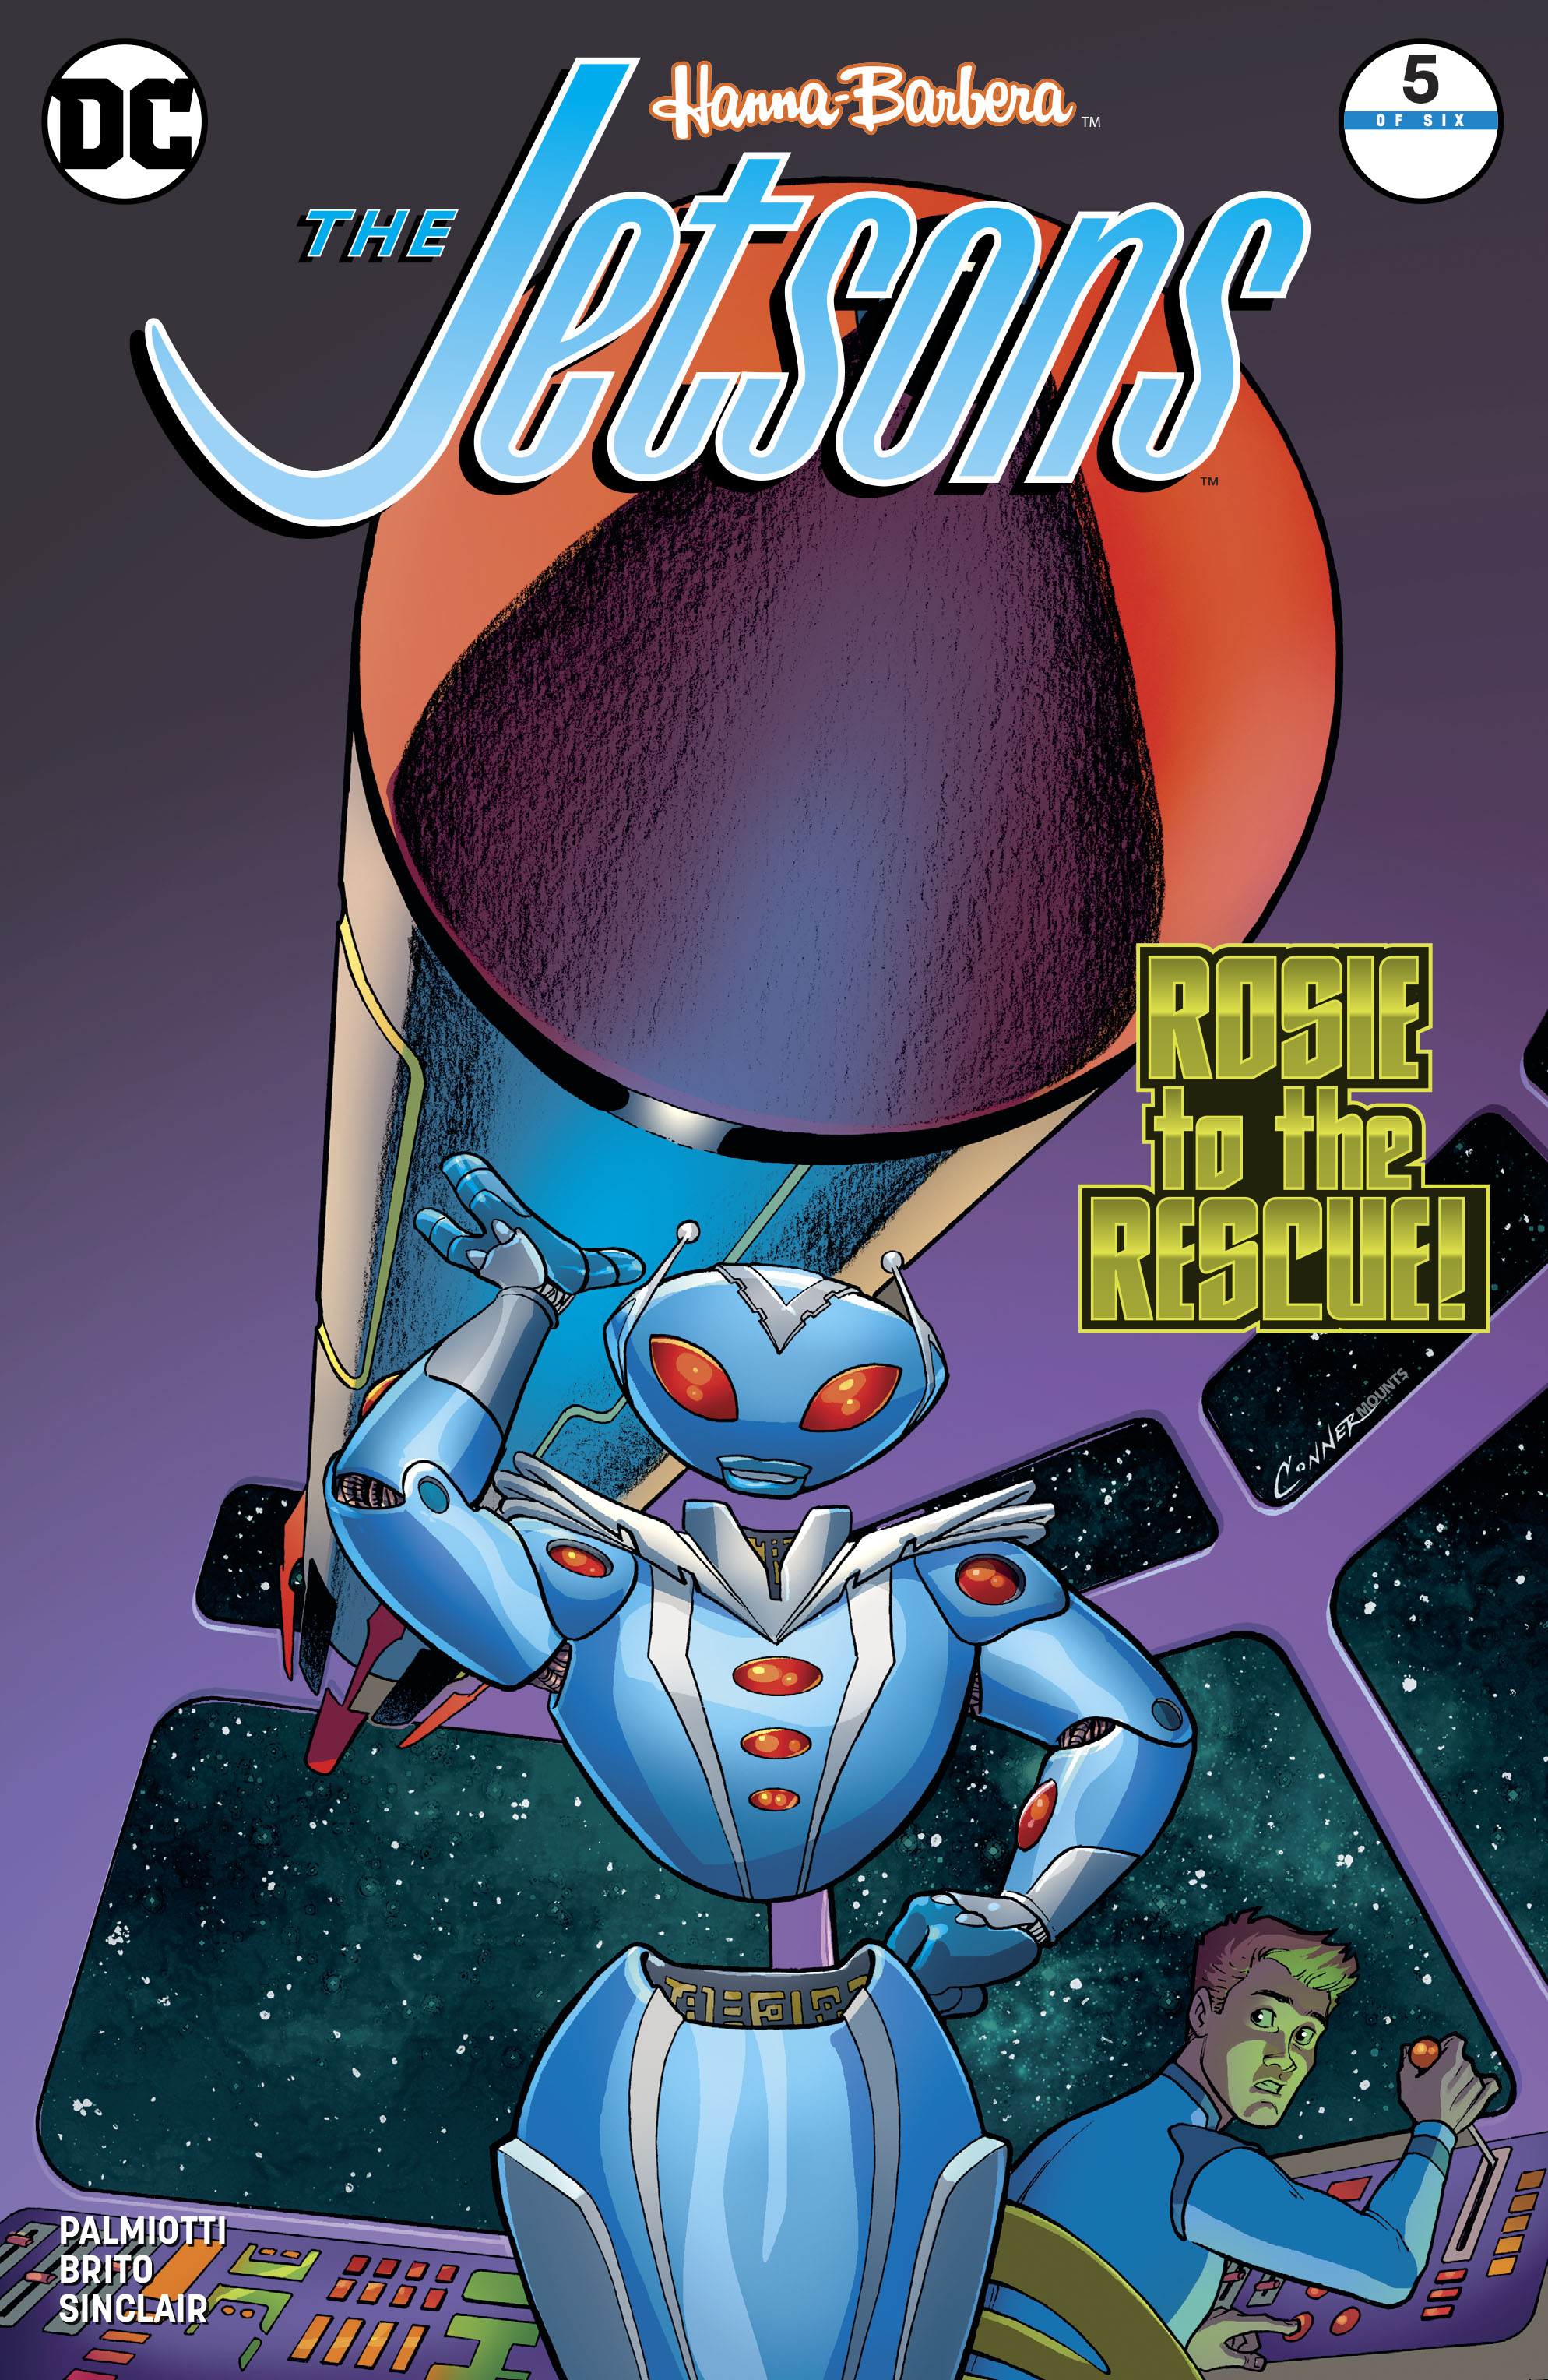 JETSONS #5 (OF 6)